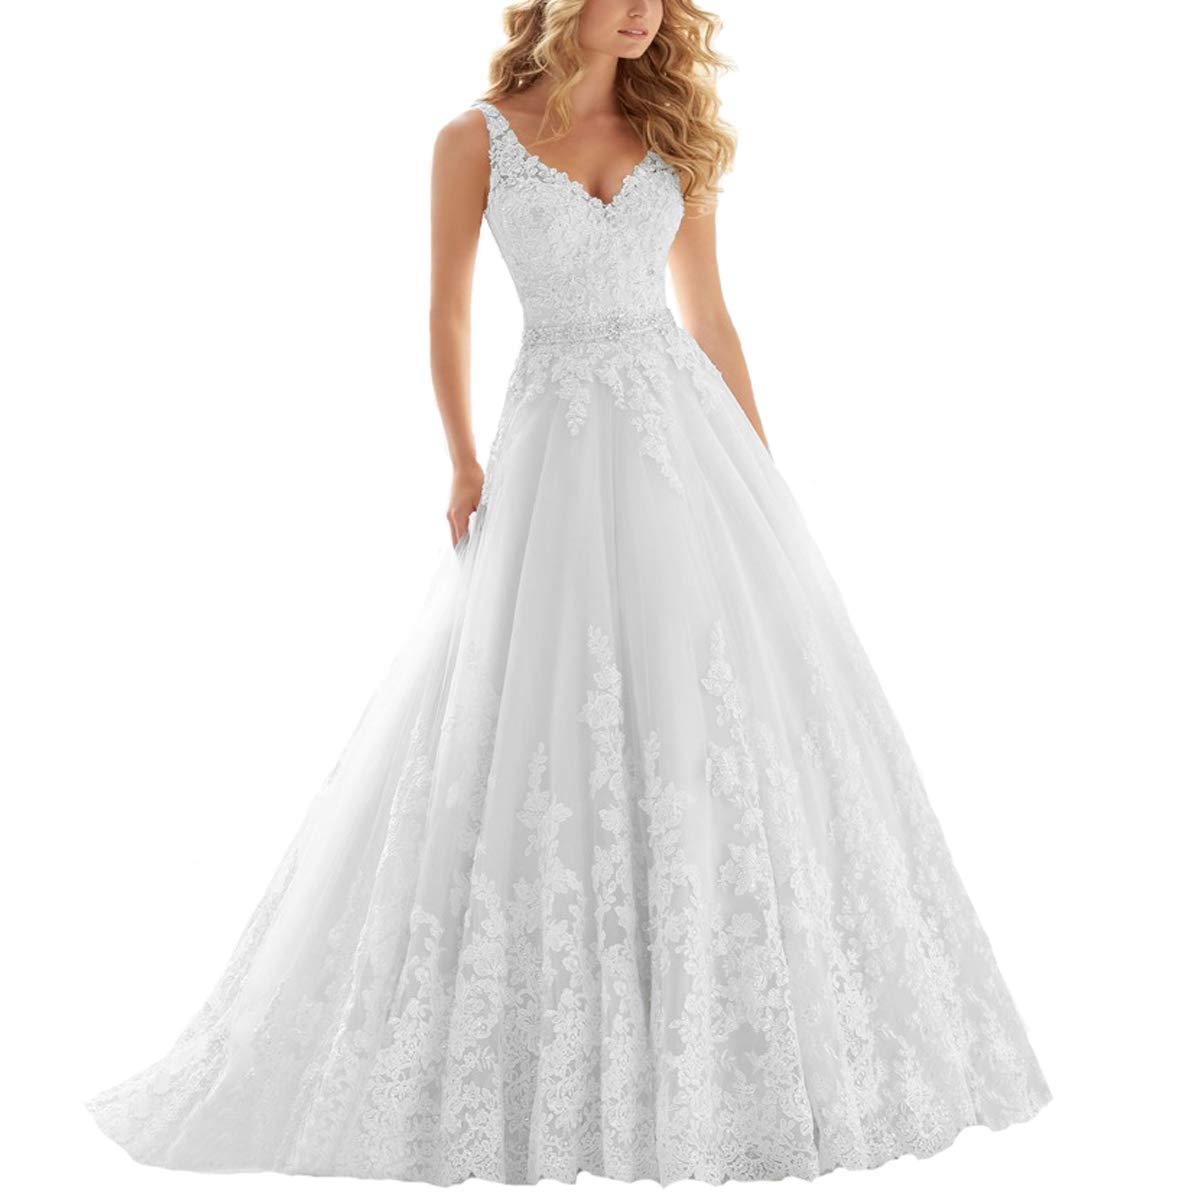 OWMAN Lace V Neck Wedding Dress Beaded Bridal Dresses Appliques Straps Wedding Gown product image